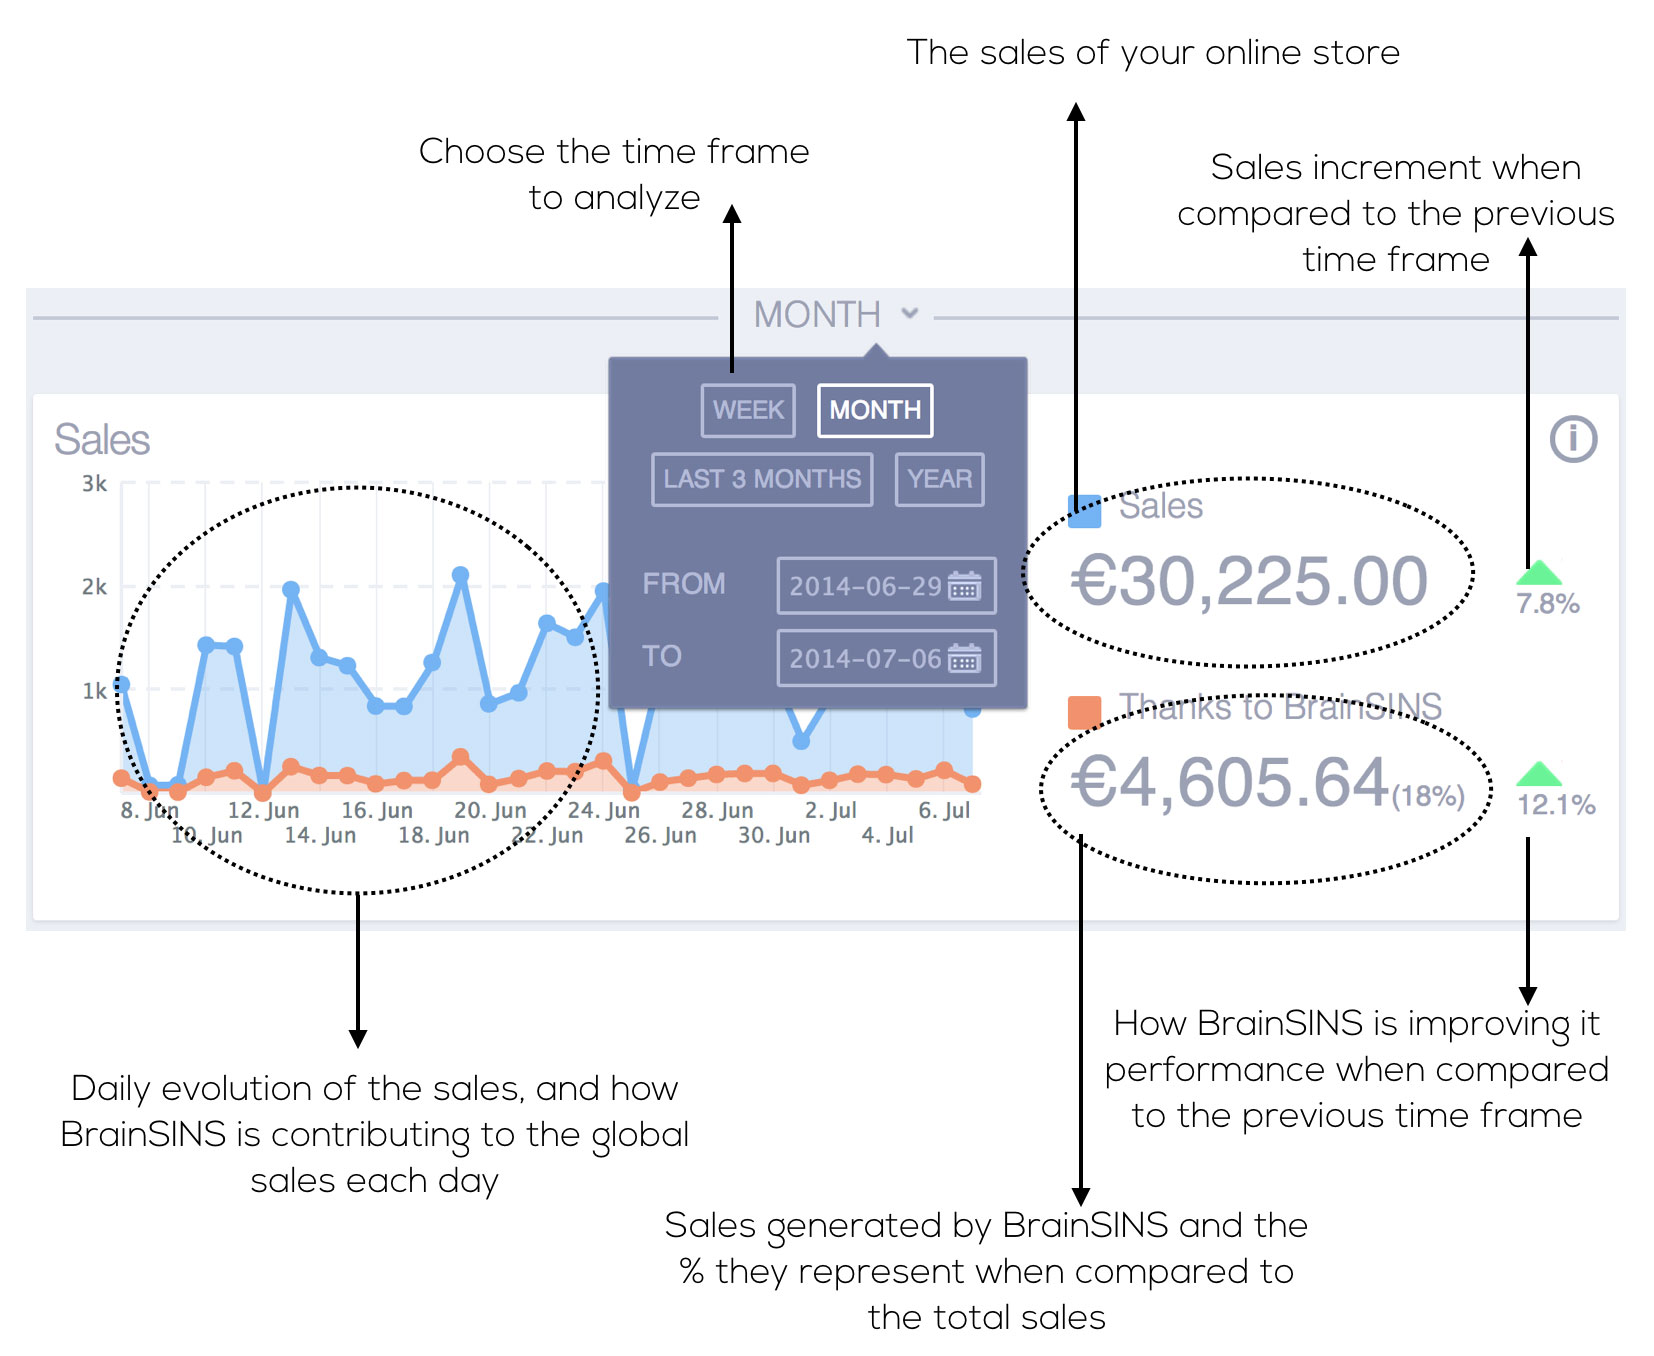 This part of the dashboard shows both the evolution of online sales as BrainSINS's contribution to sales.